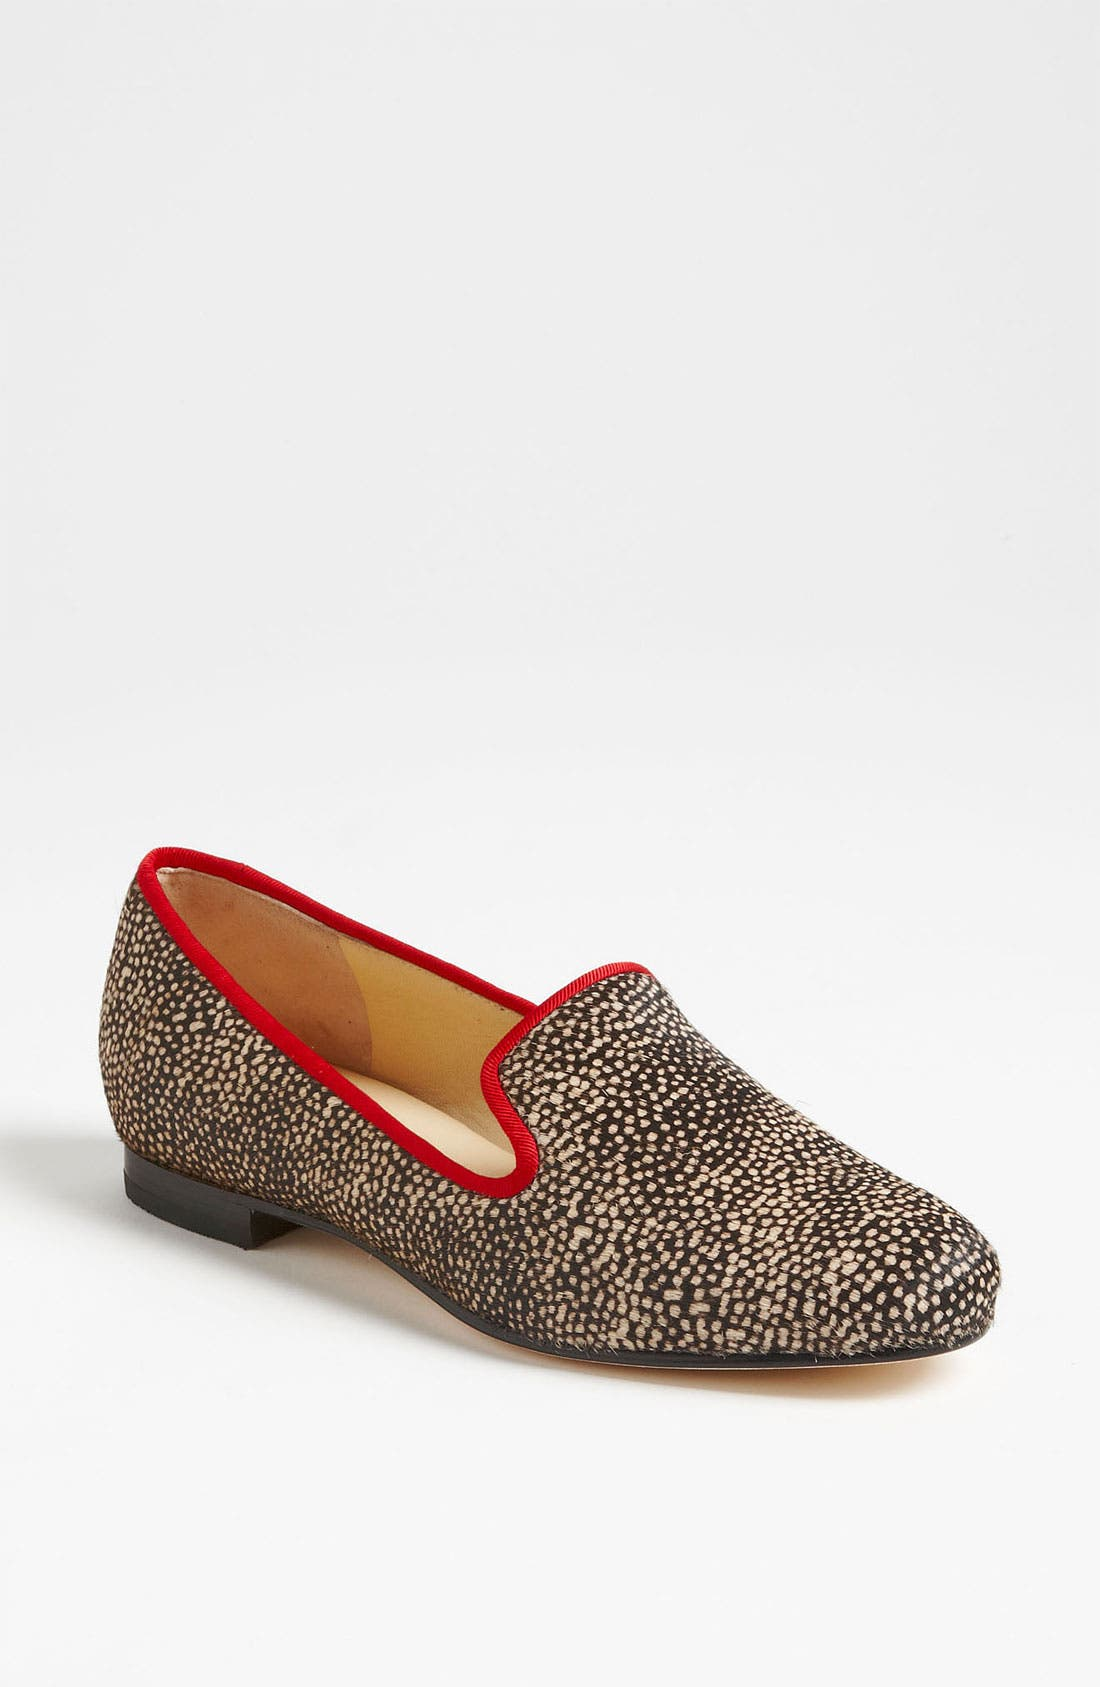 Main Image - Cole Haan 'Sabrina' Loafer